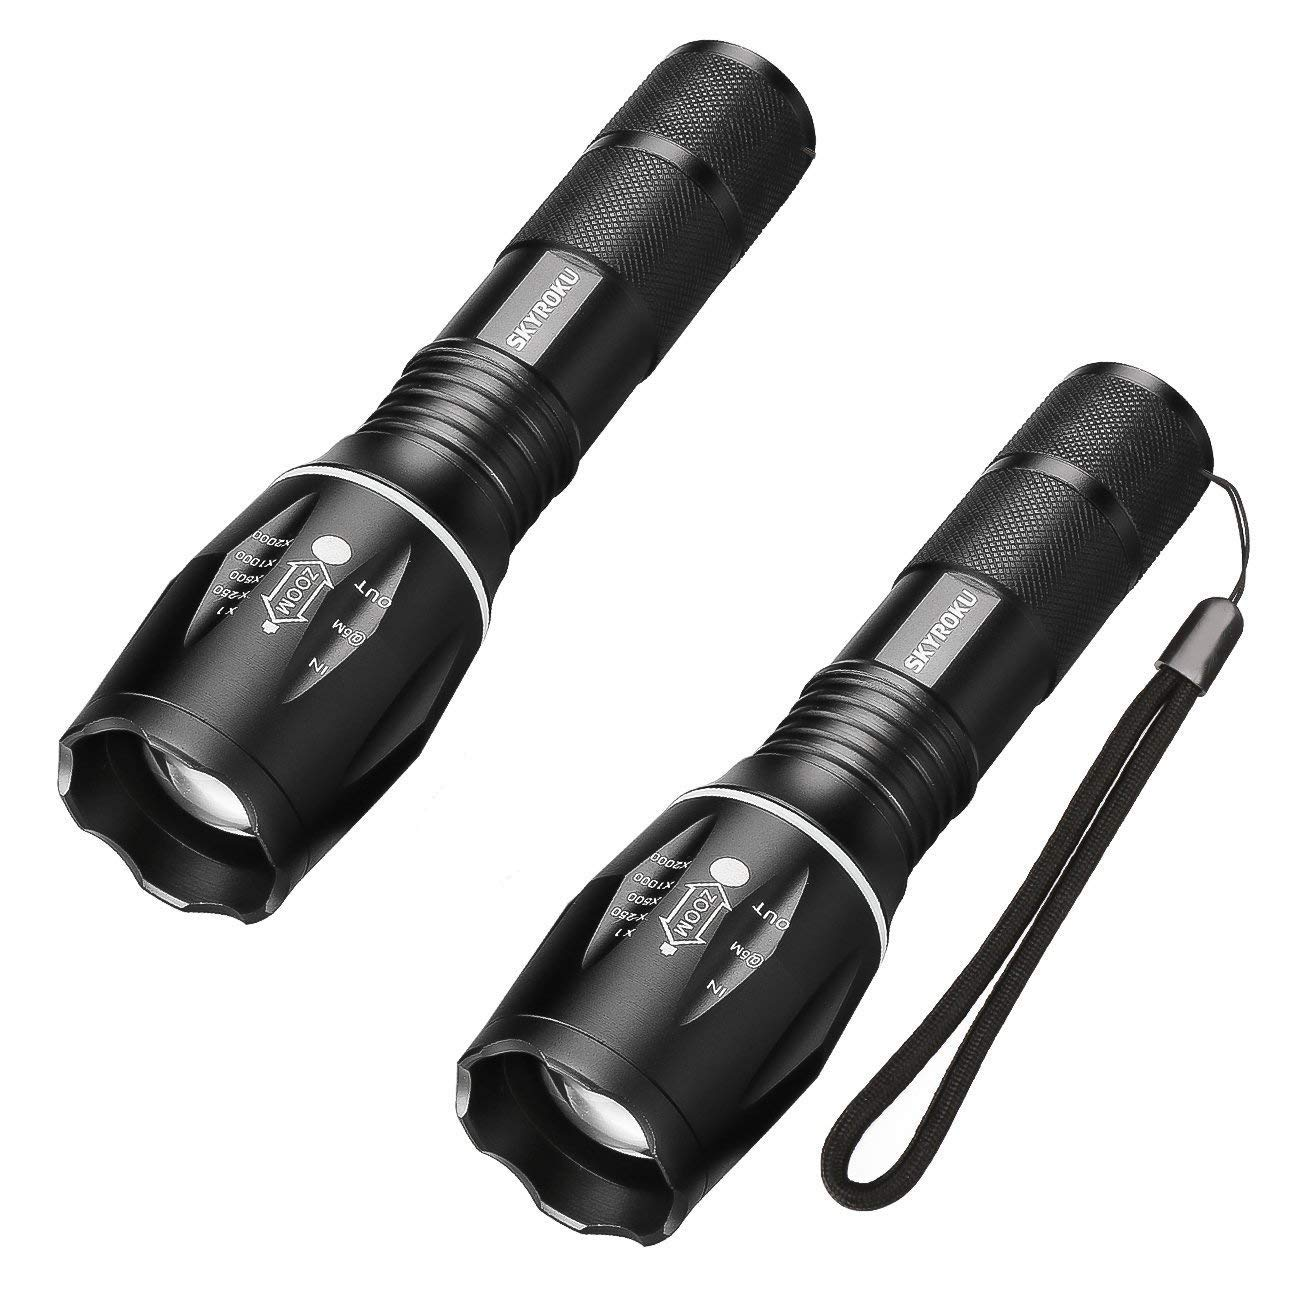 Flashlights, SKYROKU 2 Pack Portable Ultra Brightest Handheld LED Flashlight 800 Lumens Waterproof Led MINI Flash light for Hiking, Camping and Riding(New Version)